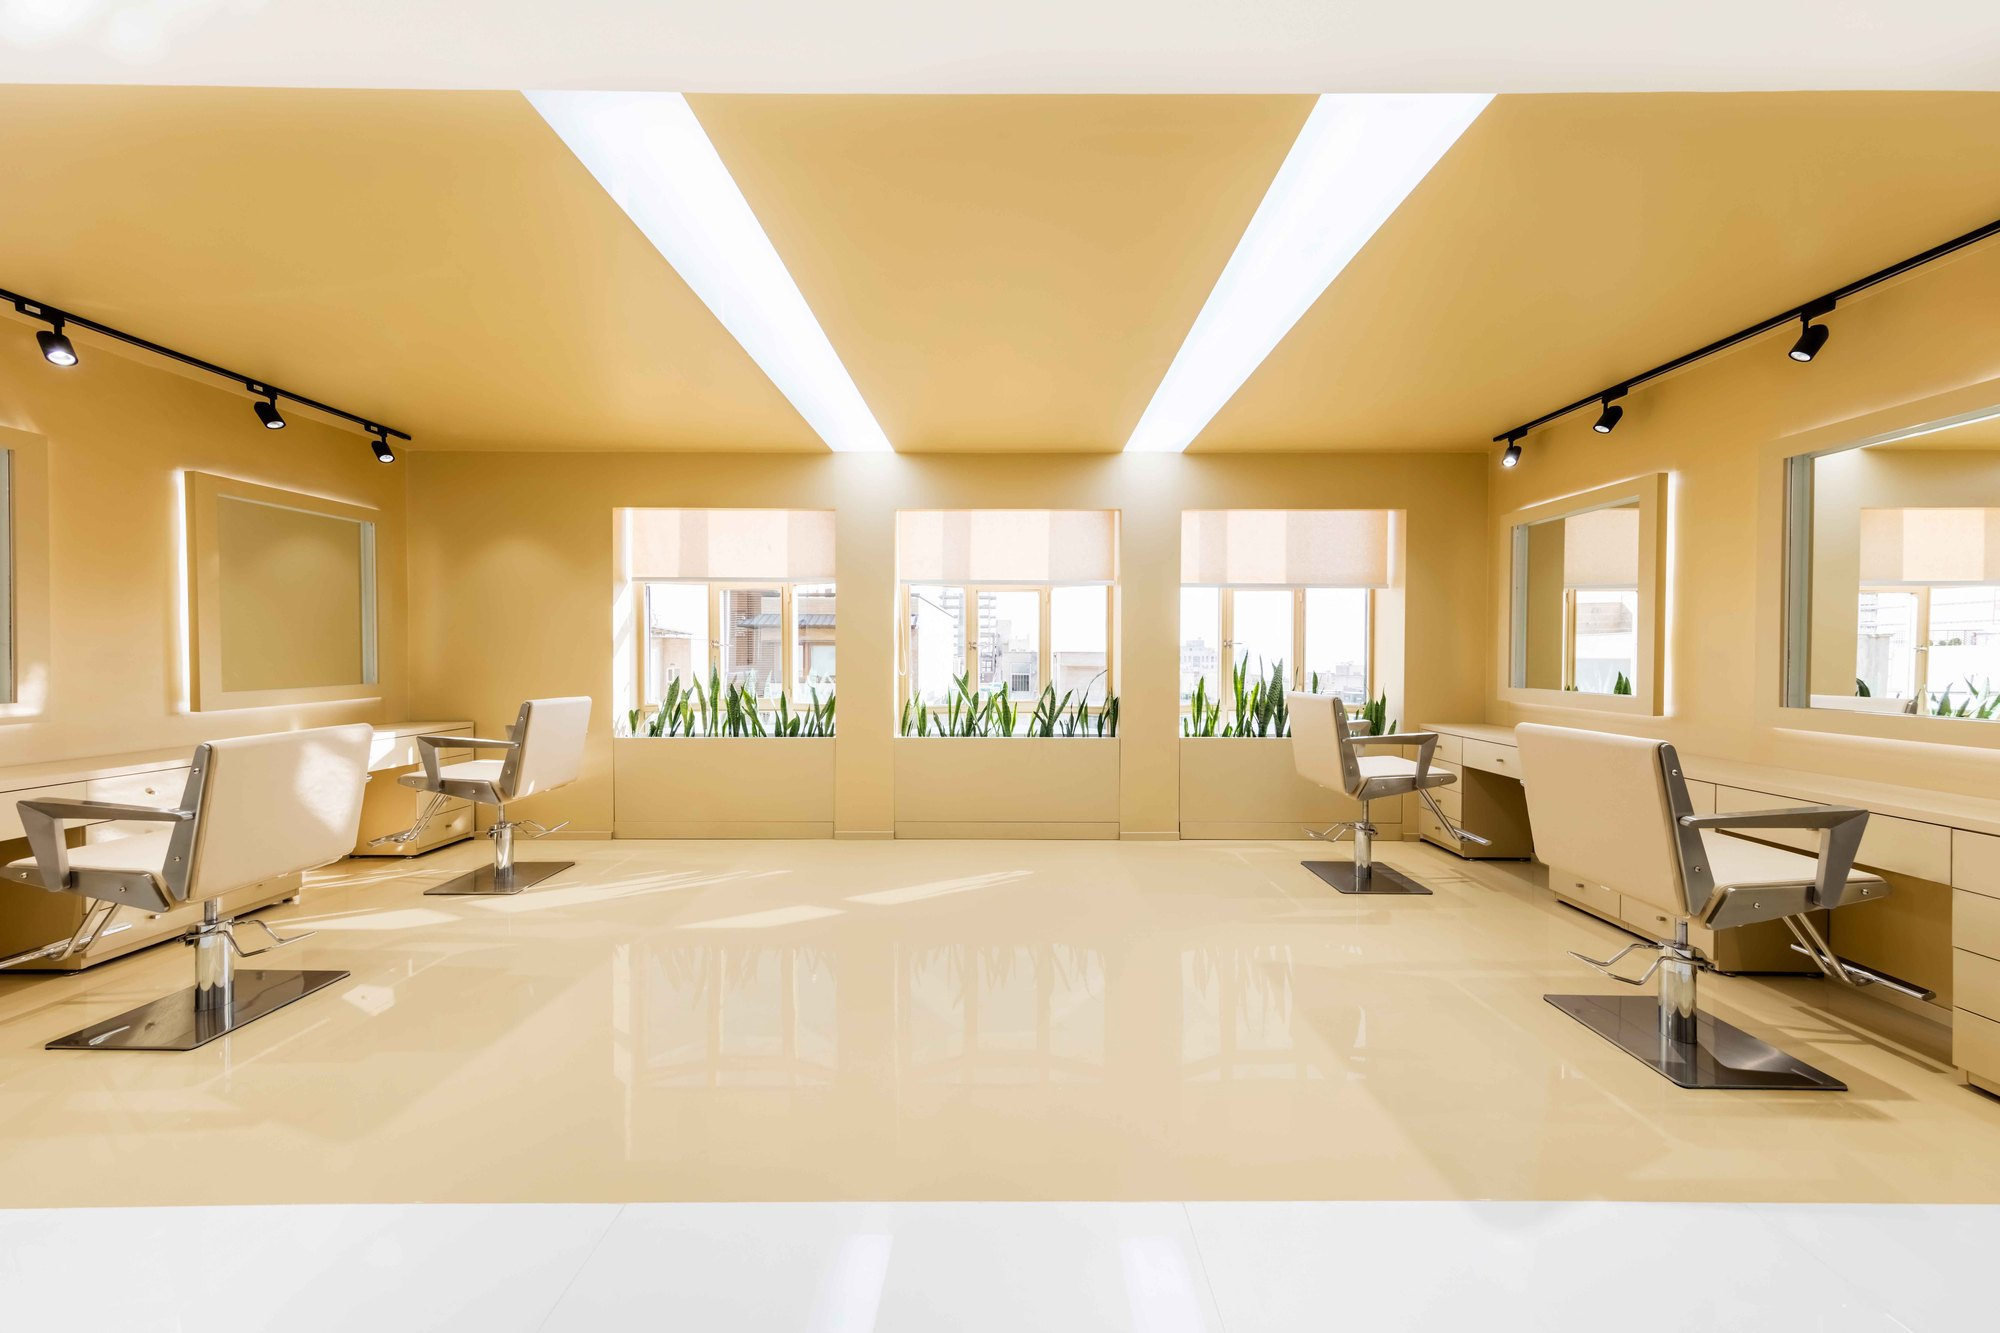 Gallery of shokrniya beauty salon 4 architecture studio 6 - Salon architecture ...